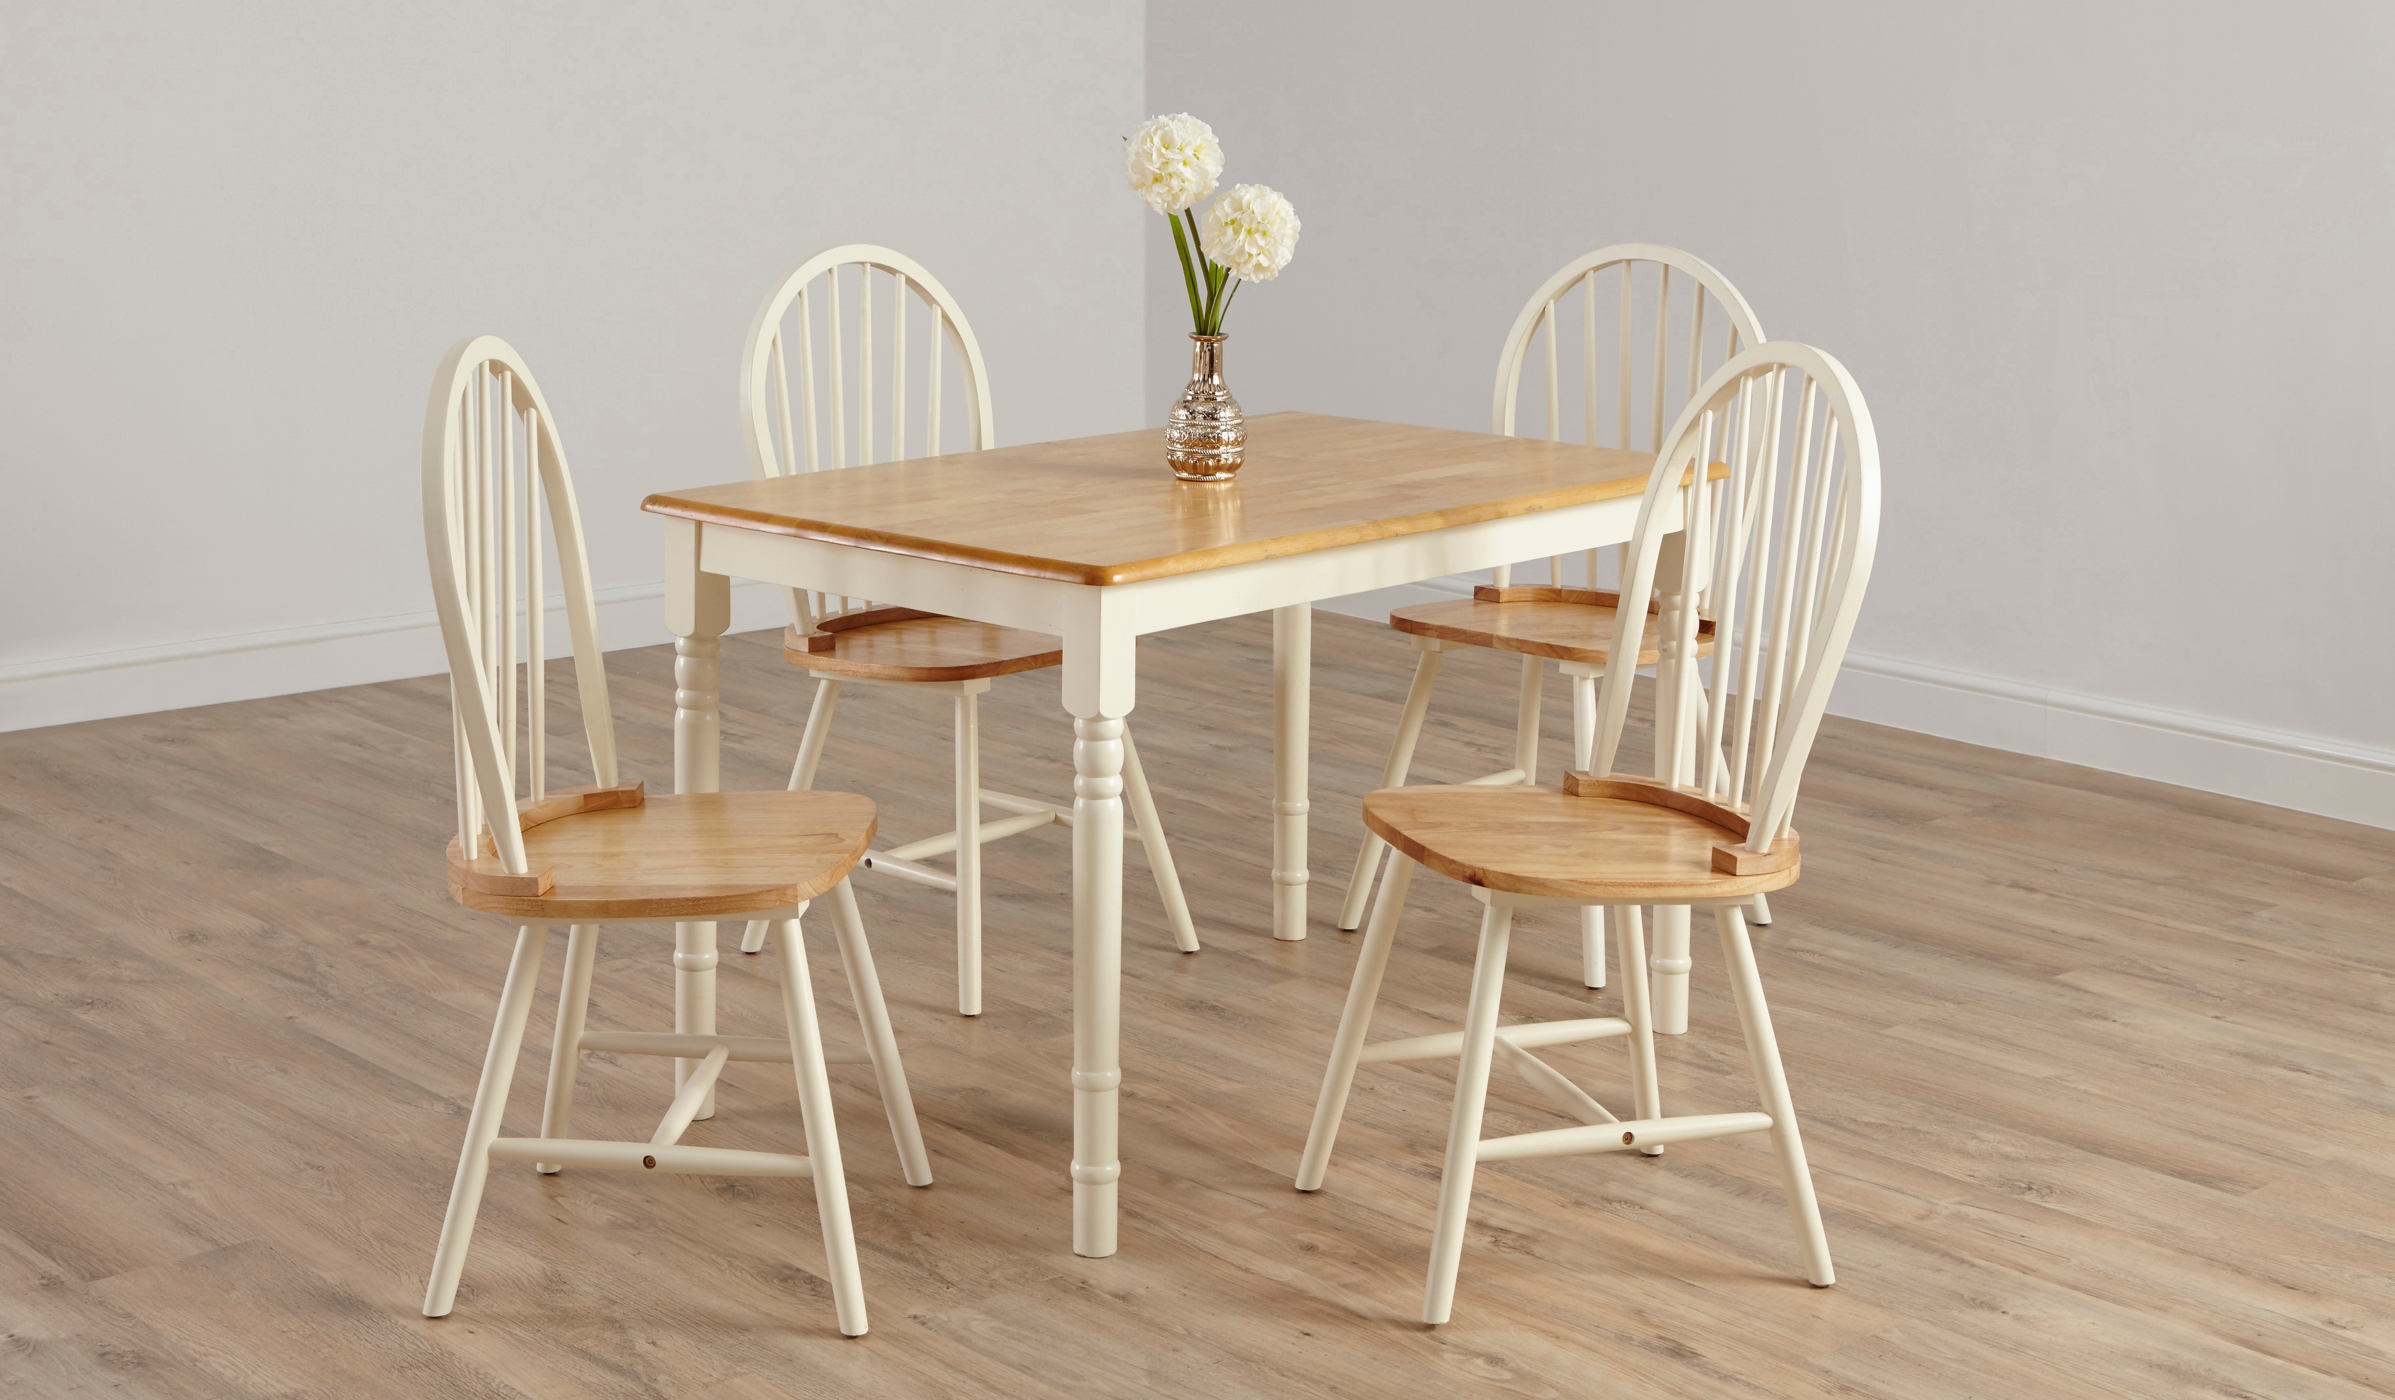 George Home Yvette Dining Furniture Range Oak Effect and Cream